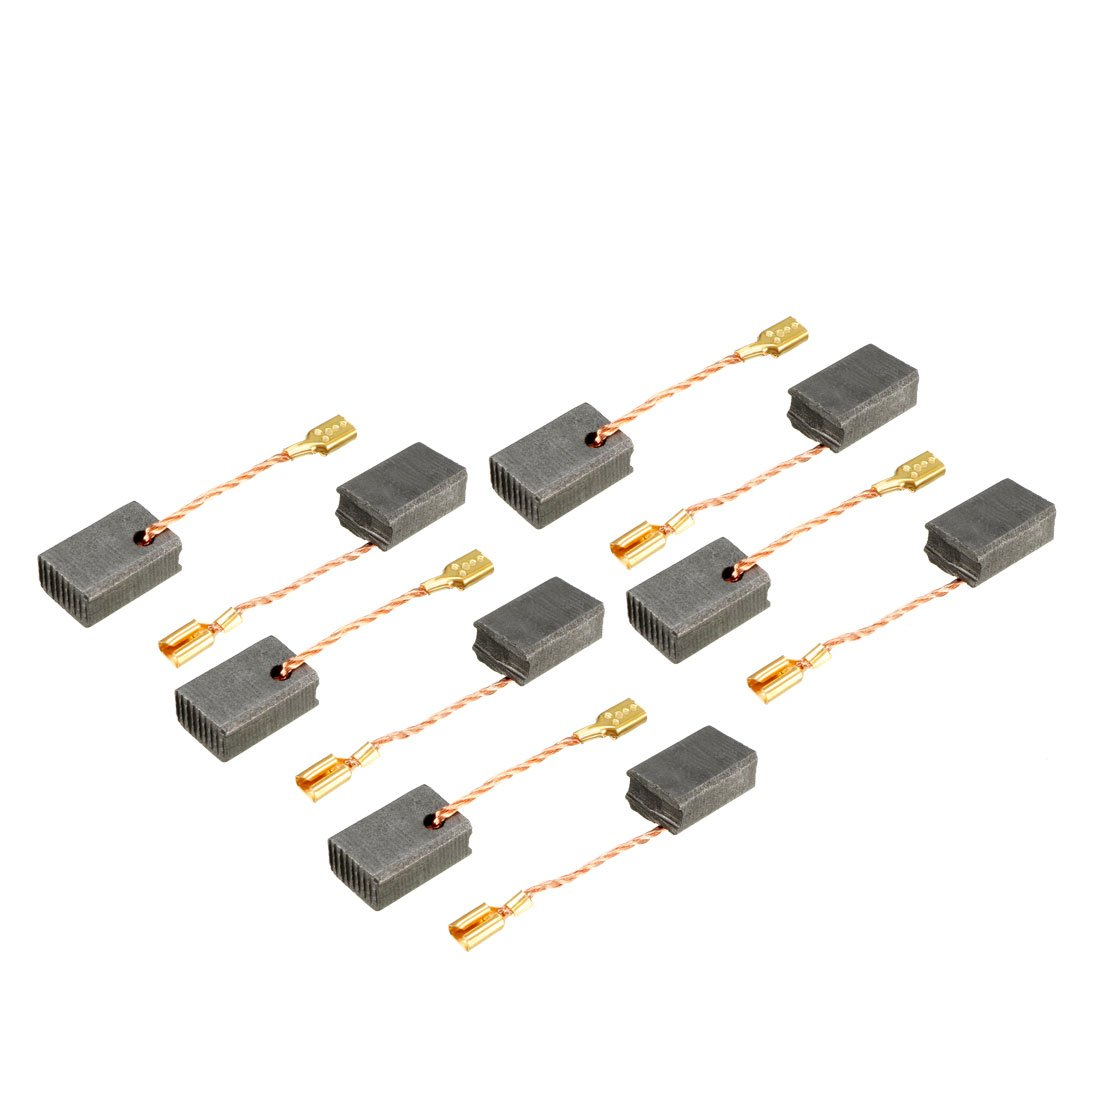 uxcell Carbon Brushes for Electric Motors 14mm x 9mm x 6mm Replacement Repair Part 10pcs